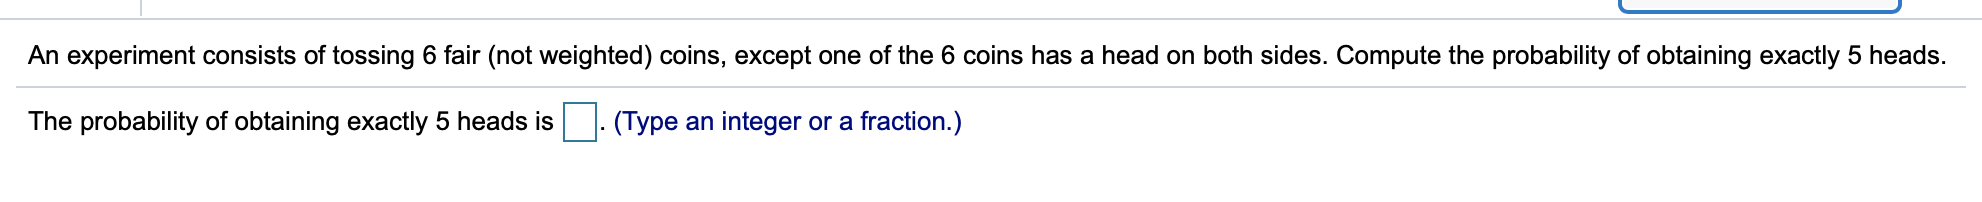 An experiment consists of tossing 6 fair (not weighted) coins, except one of the 6 coins has a head on both sides. Compute the probability of obtaining exactly 5 heads The probability of obtaining exactly 5 heads is (Type an integer or a fraction.)